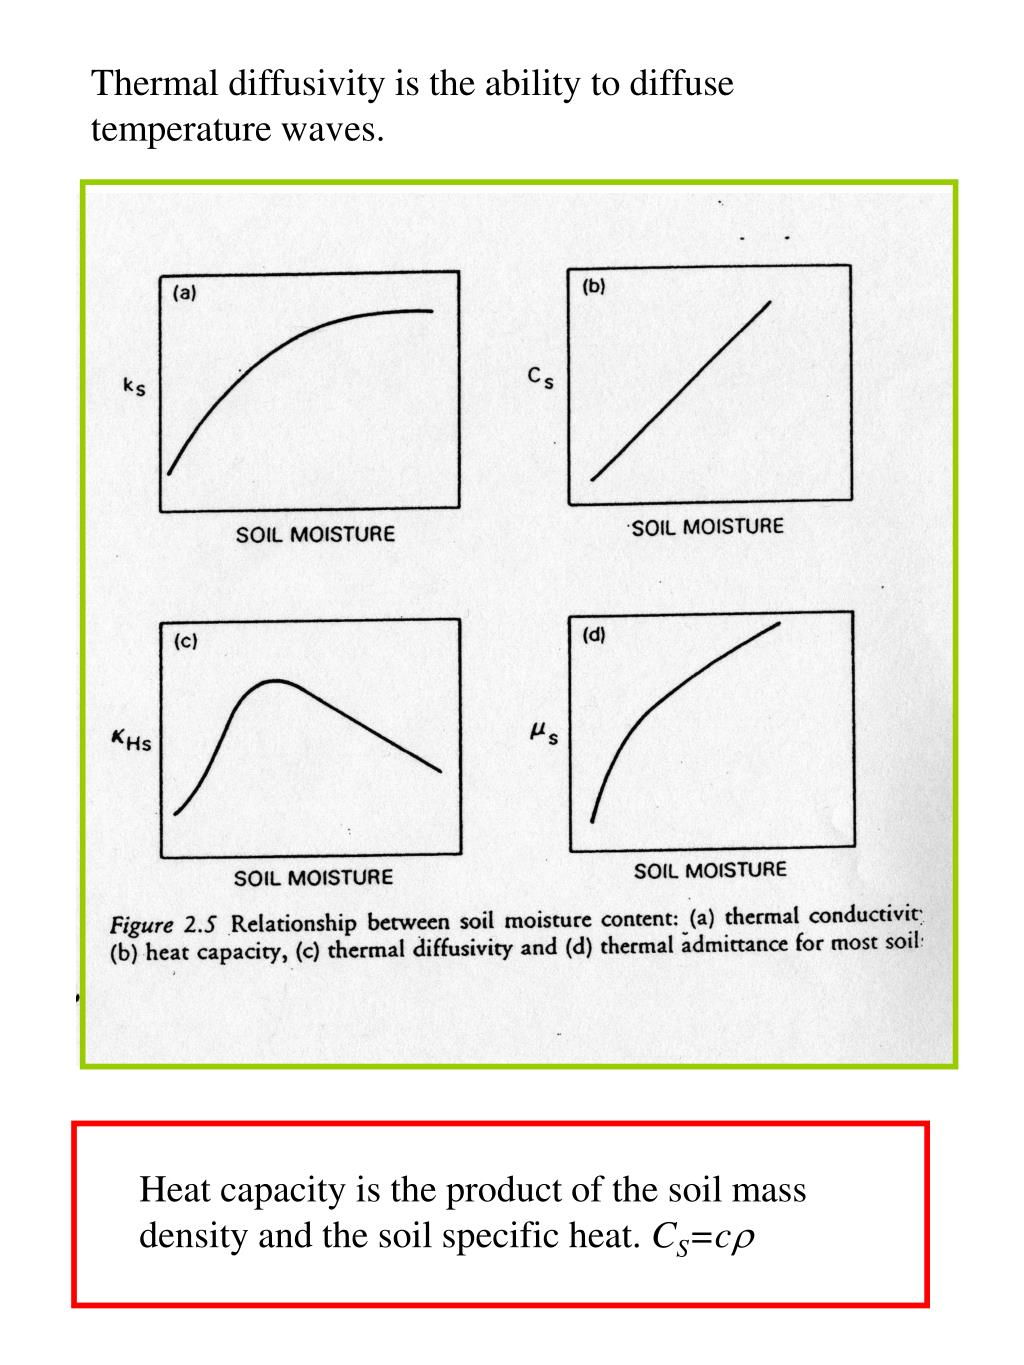 Thermal diffusivity is the ability to diffuse temperature waves.